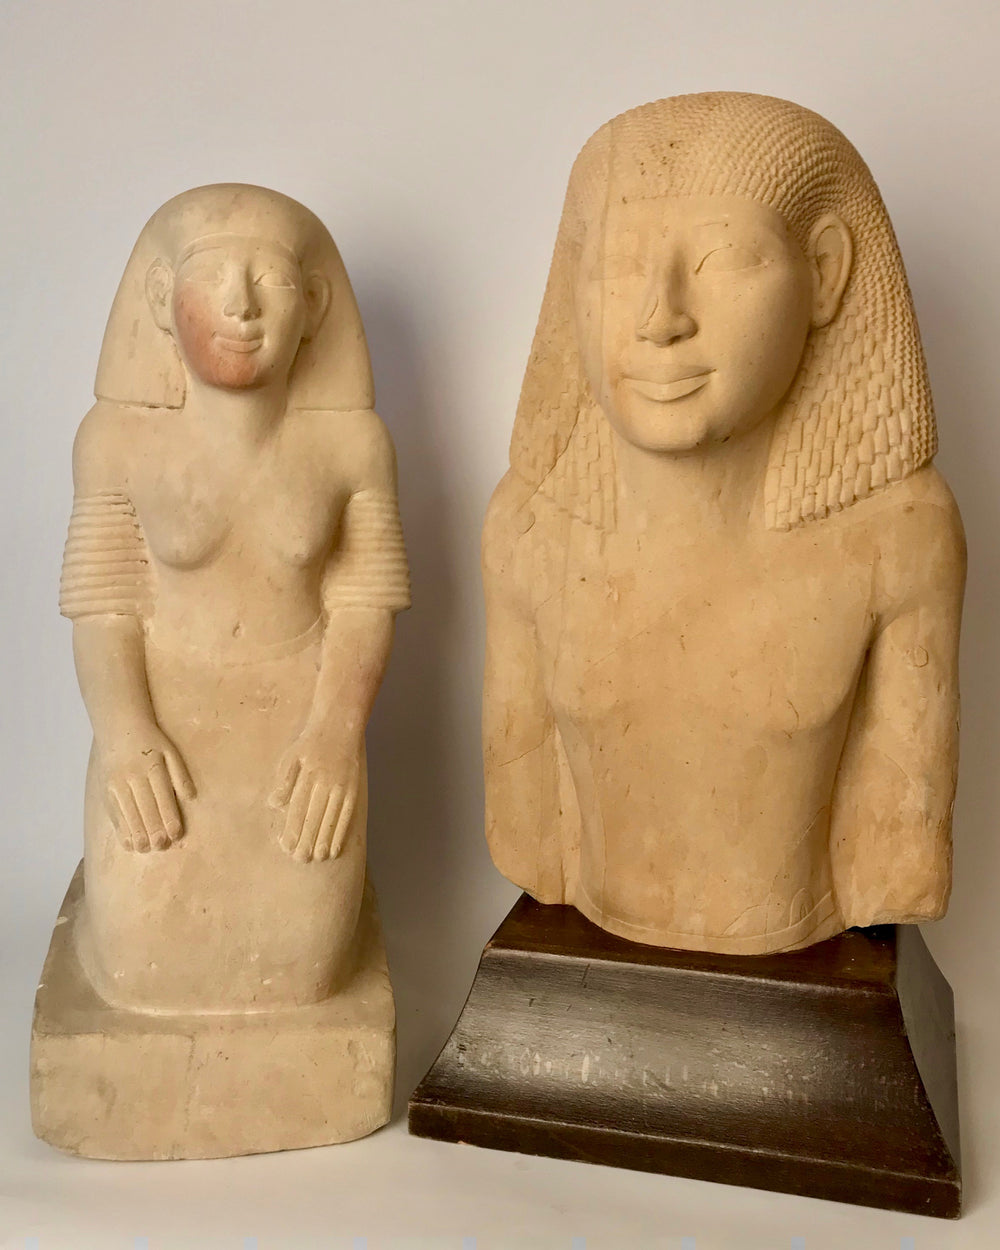 #antiquities #ancient #art #antiquity #archaeology #ancientart #artgallery #artemissionart #artemission #onlinegalleryt #ancientegyptian #antiquites #gallery #bhfyp #history #art #archeologia #ancient #museum #egypt #cairo #egyptian